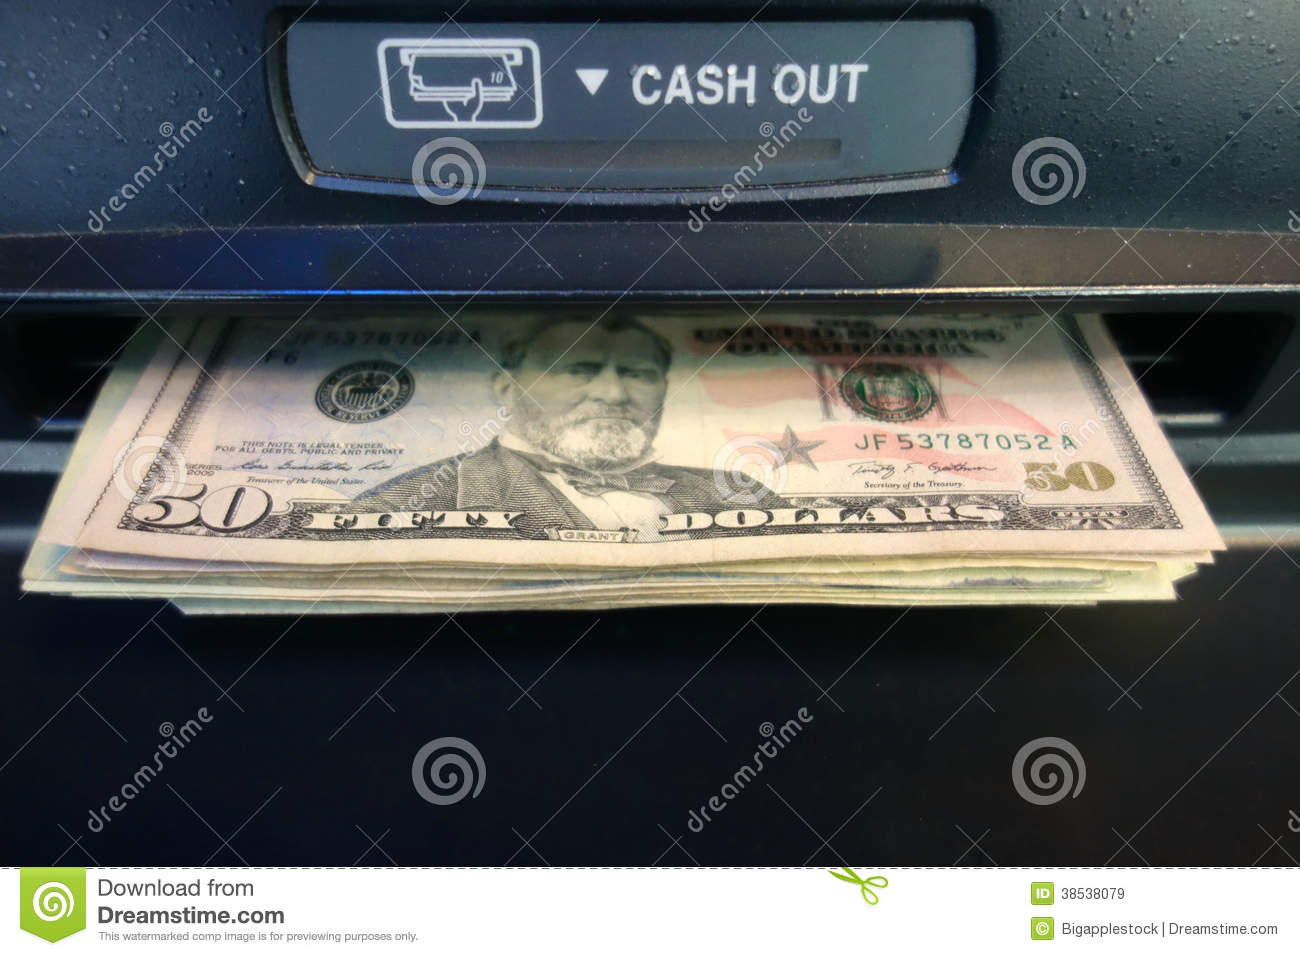 Getting Cash at an ATM